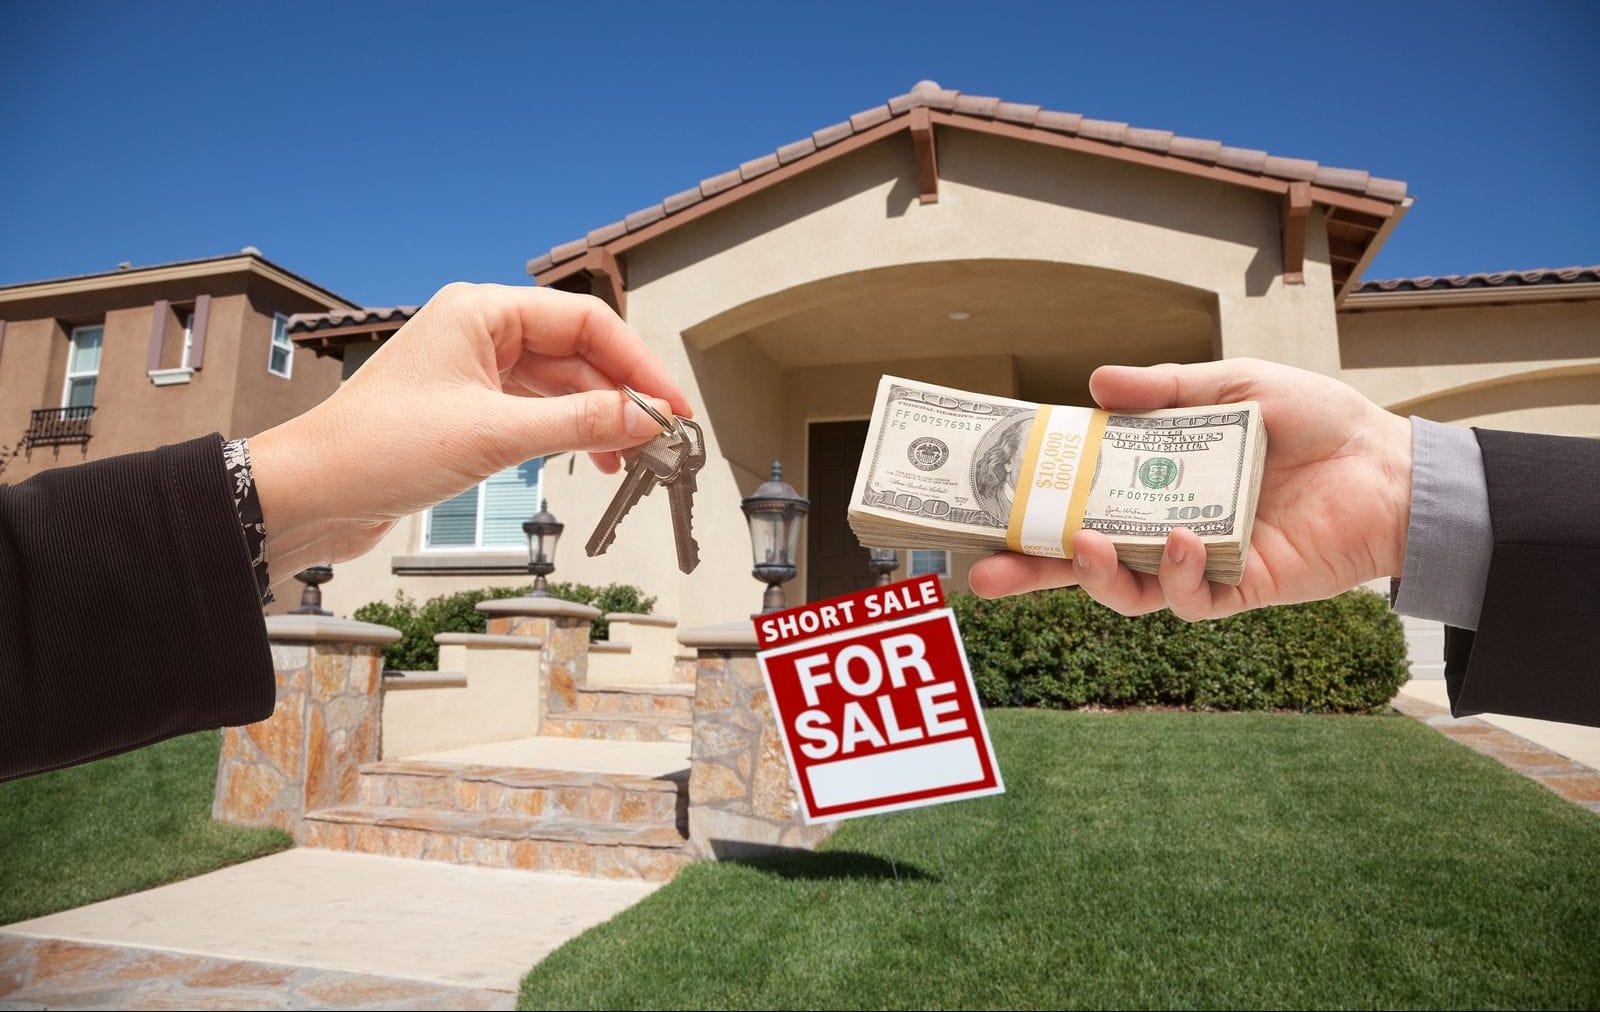 What Is a Short Sale in Real Estate Investing? | Mashvisor